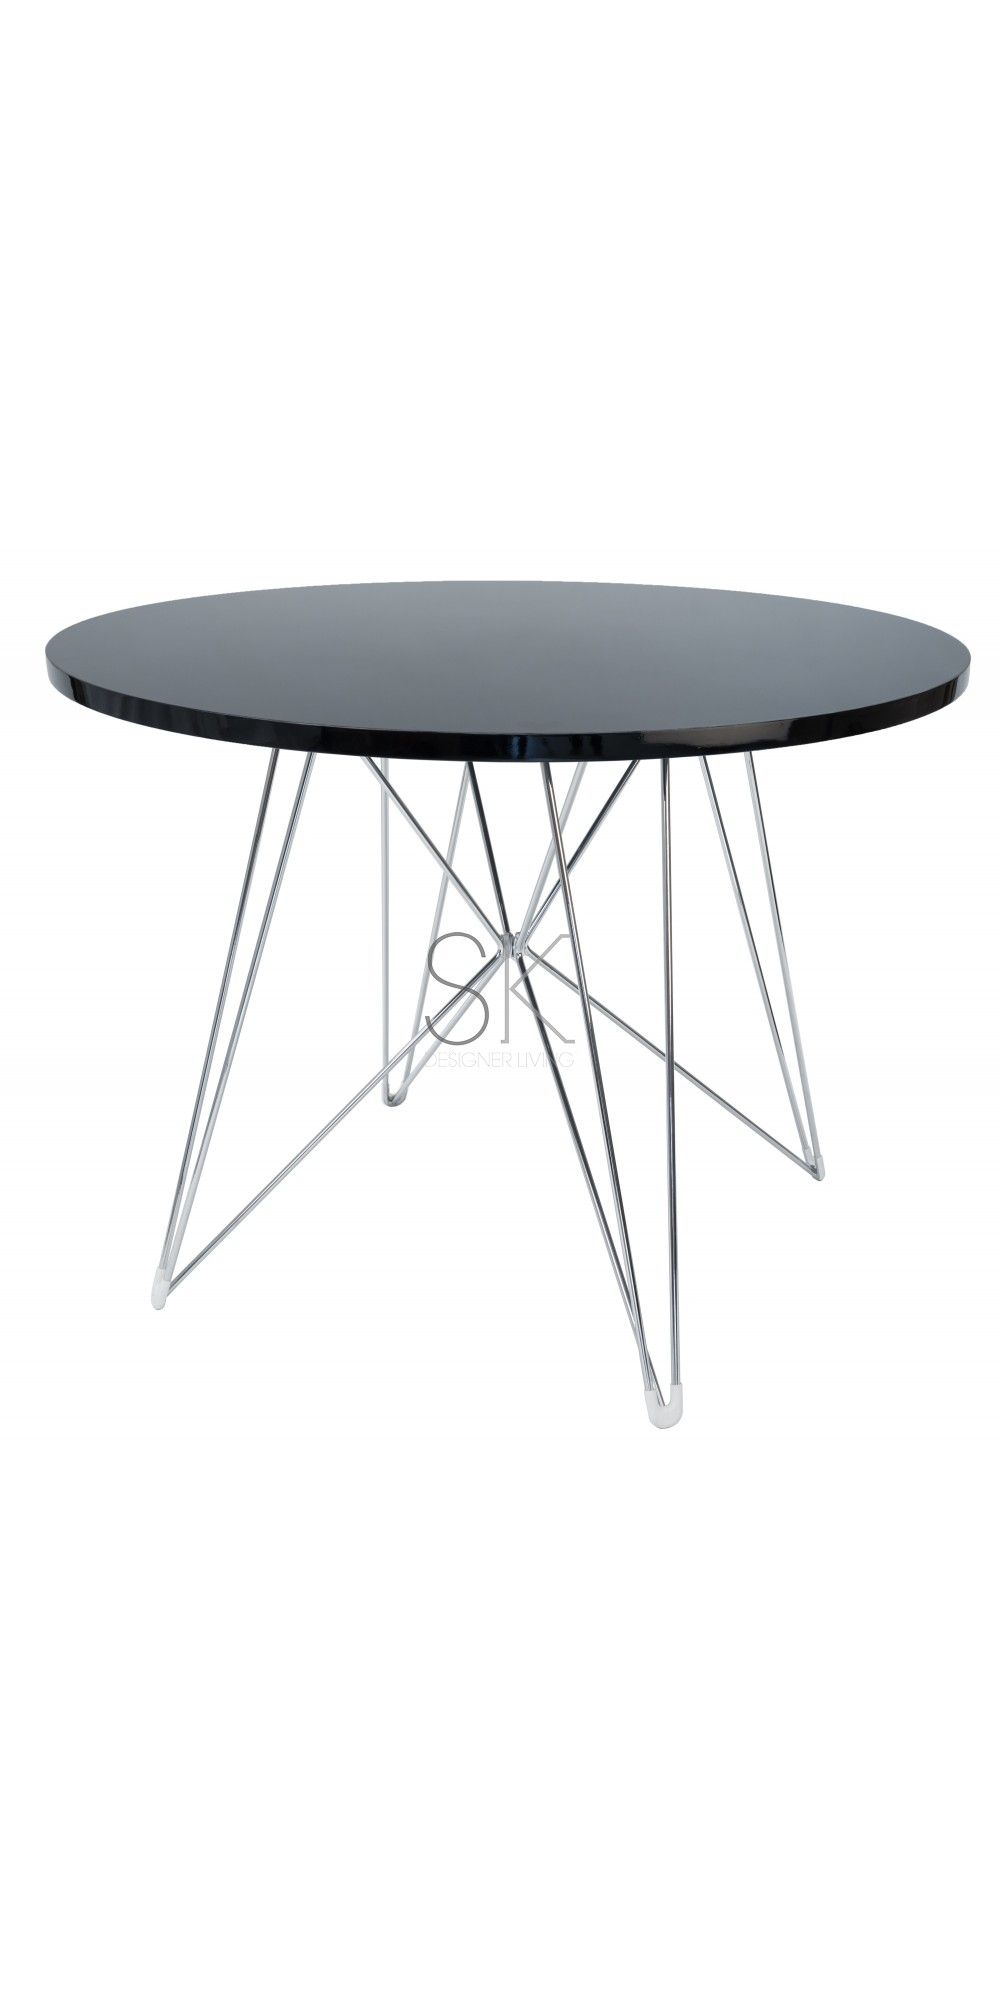 Beau Replica Eames DSR Round Eiffel Dining Table   Black U0026 Chrome Legs   100cm